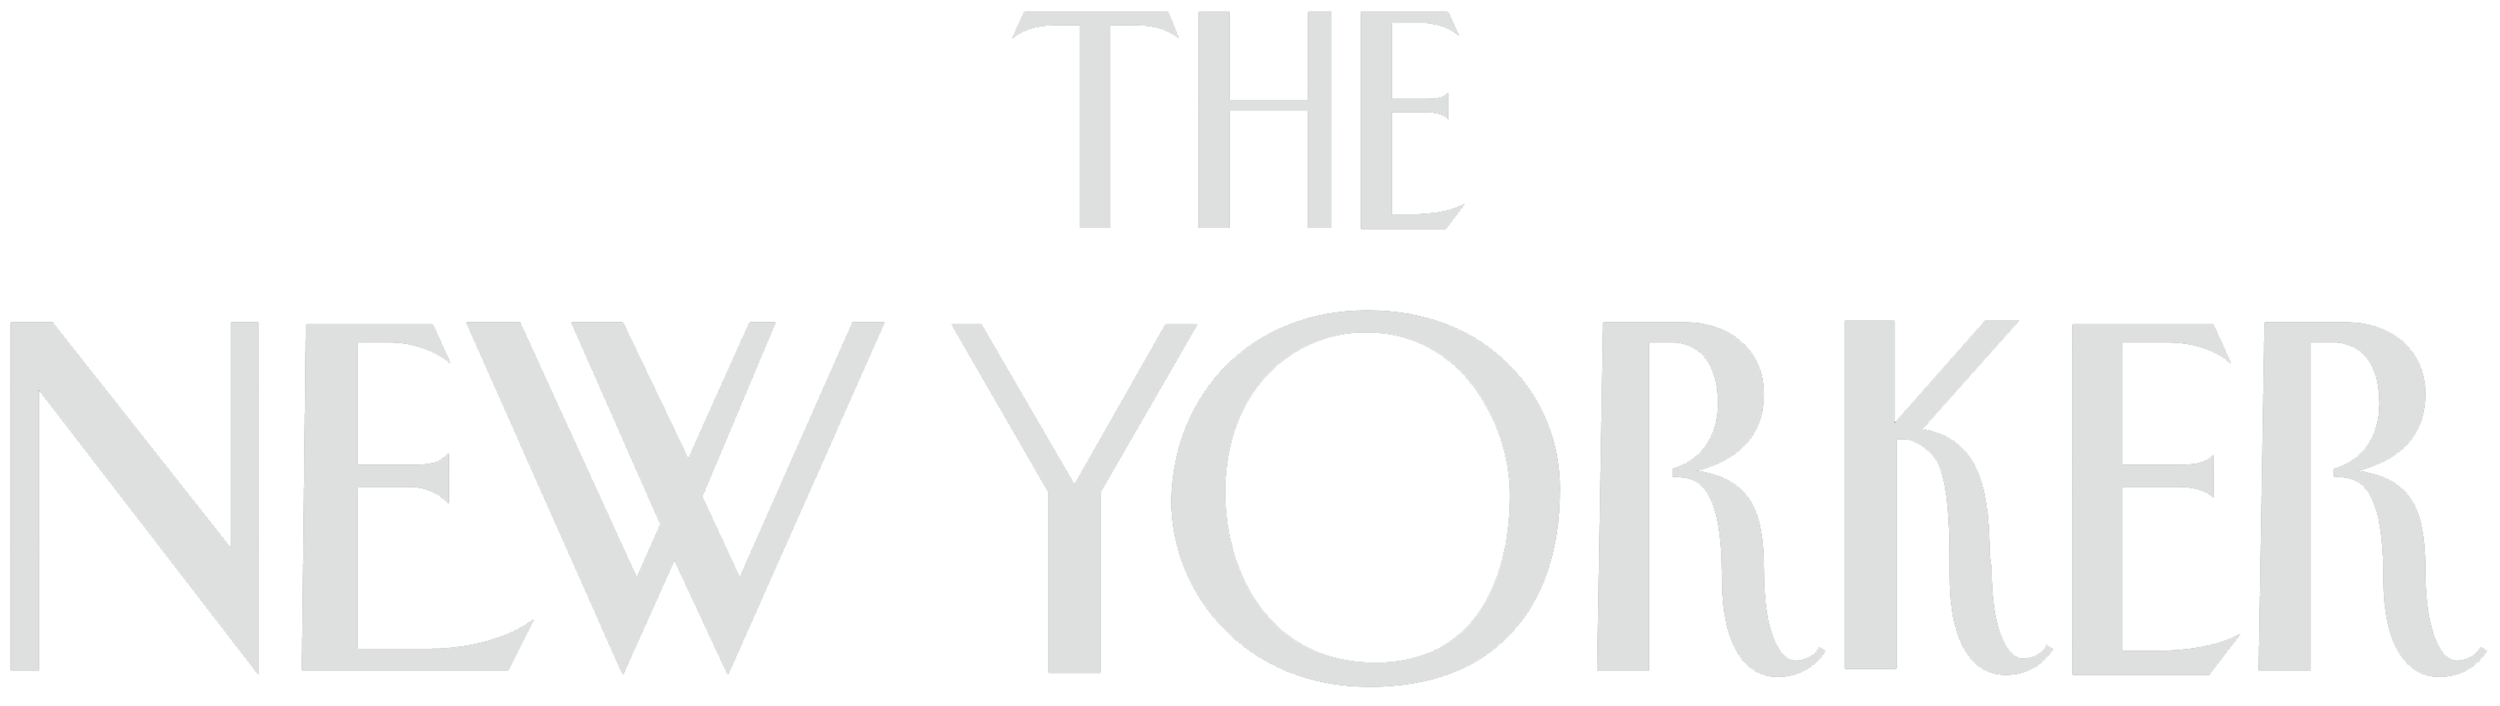 The-New-Yorker-logo_white.png